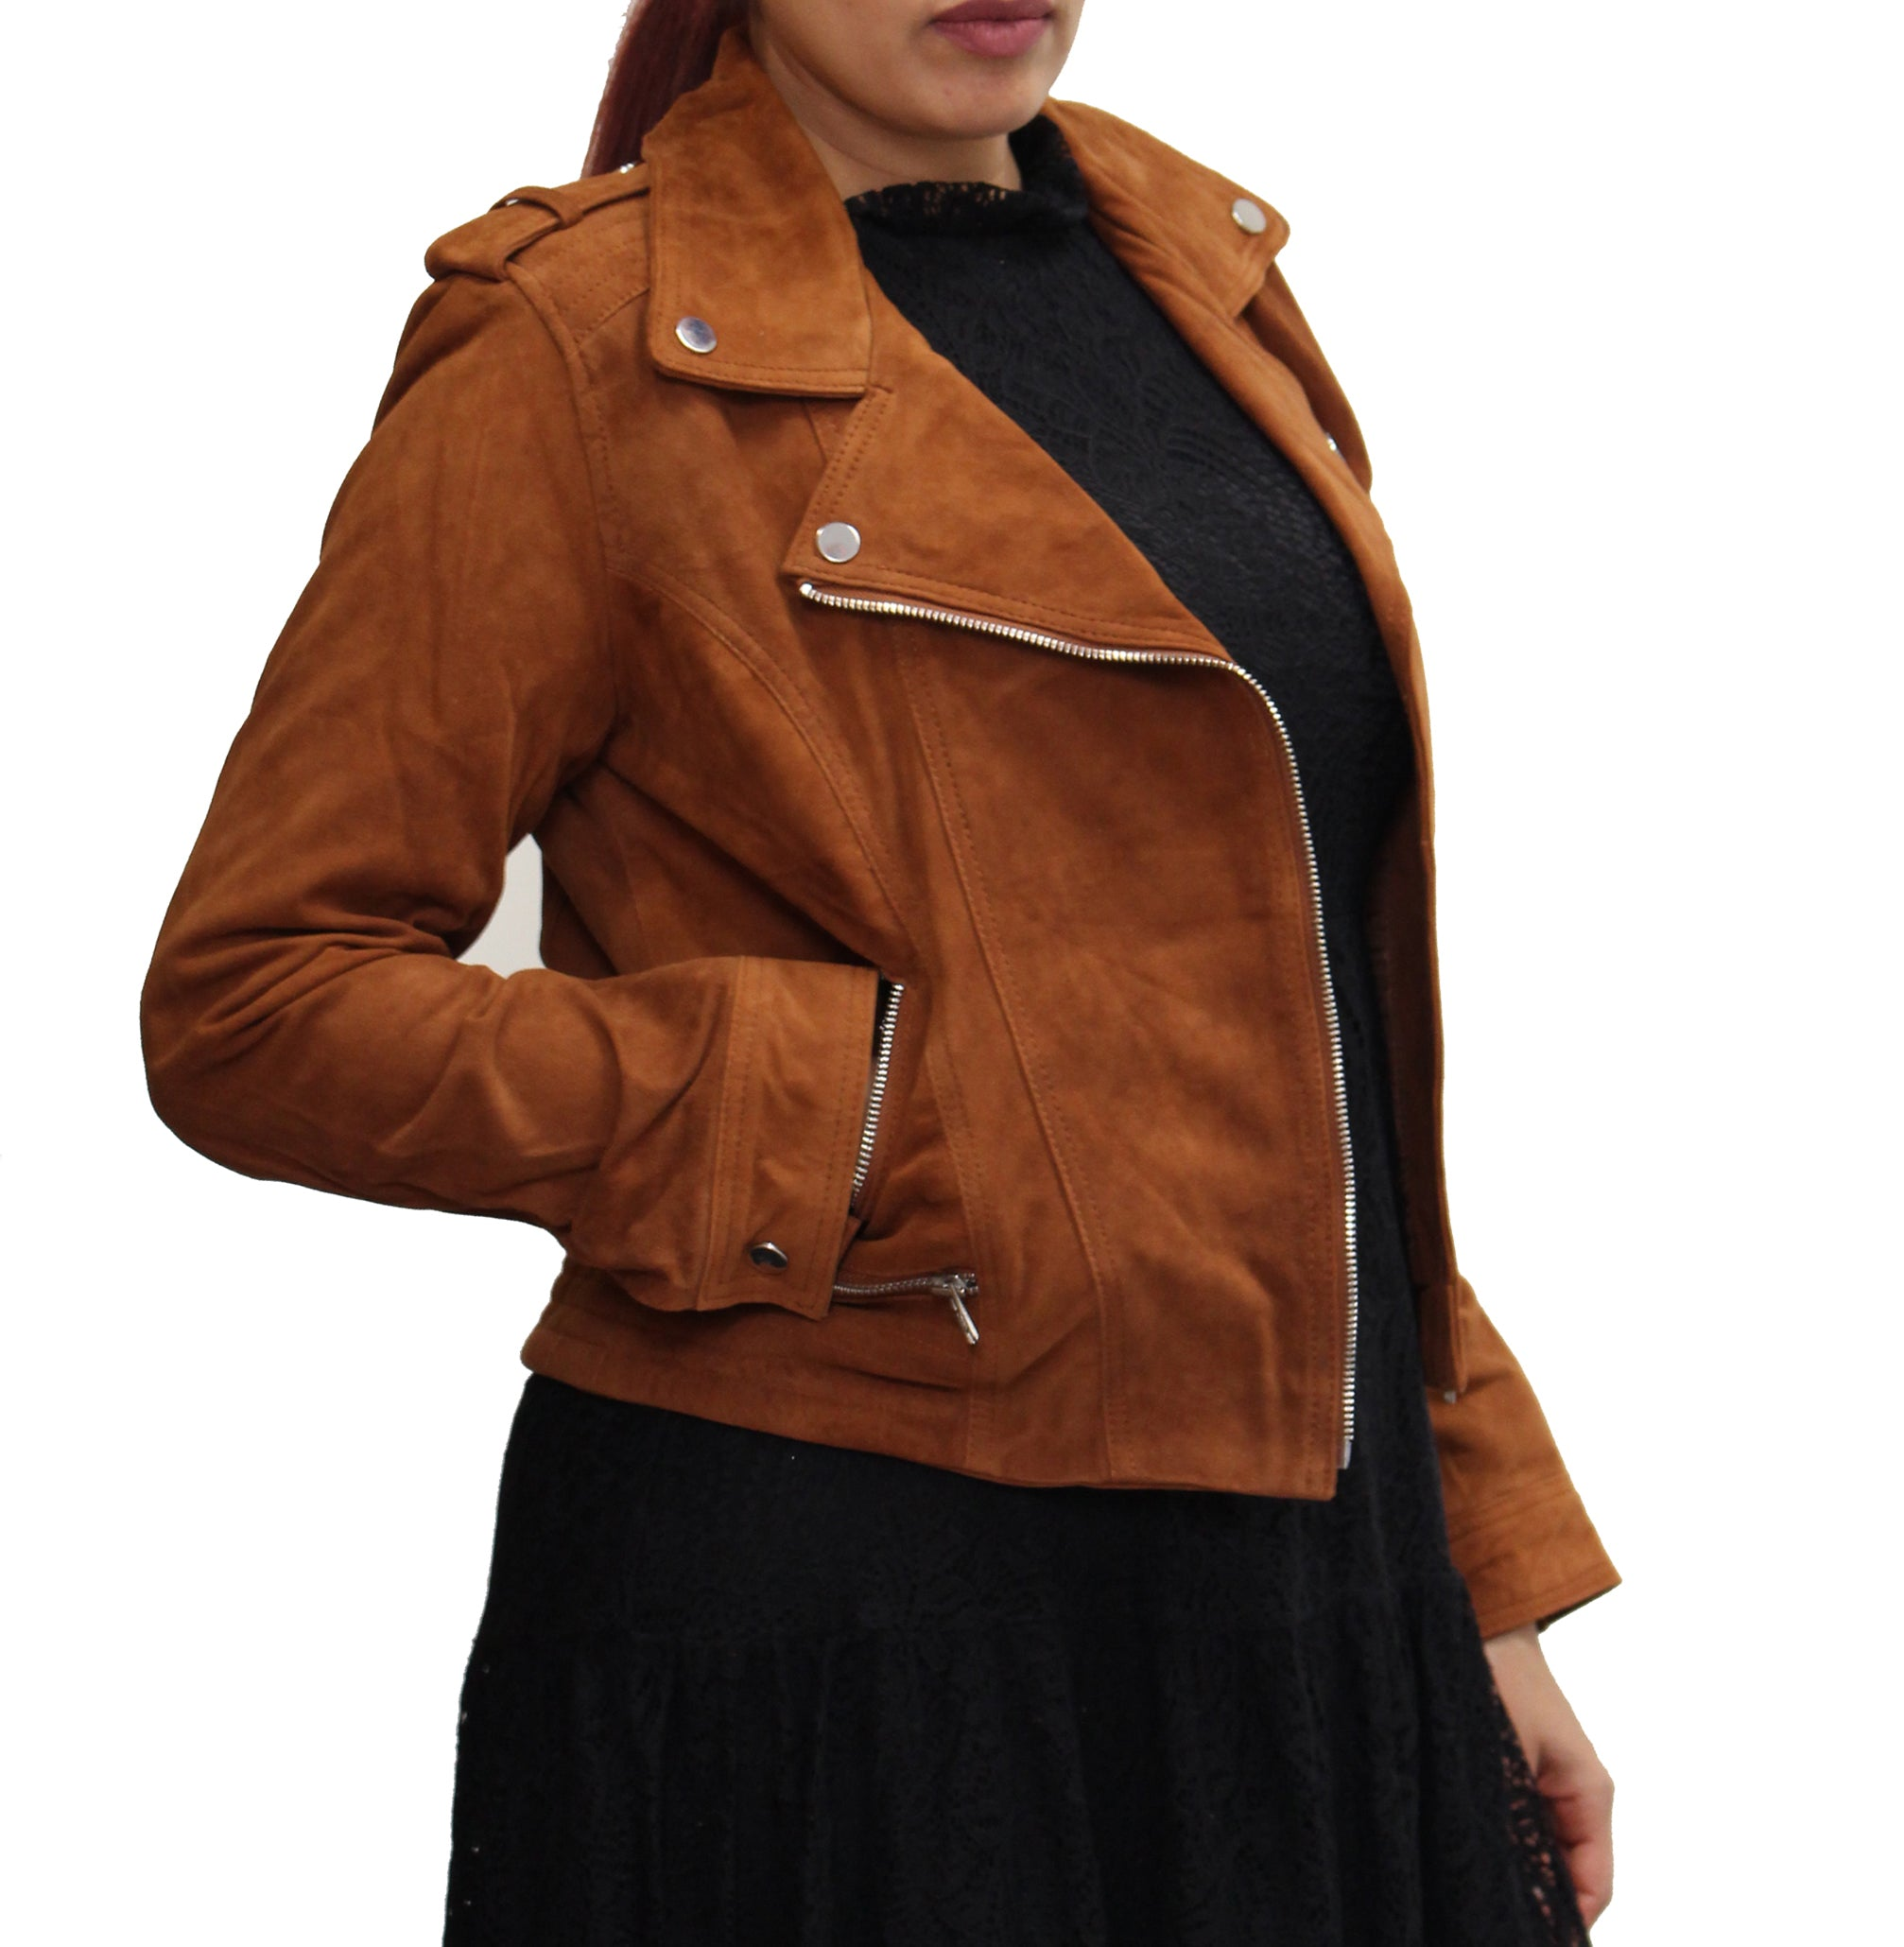 Womens Suede Lightweight Real Leather Brando Style Cross Zip Biker Jacket. Available in Black, Brown and Tan